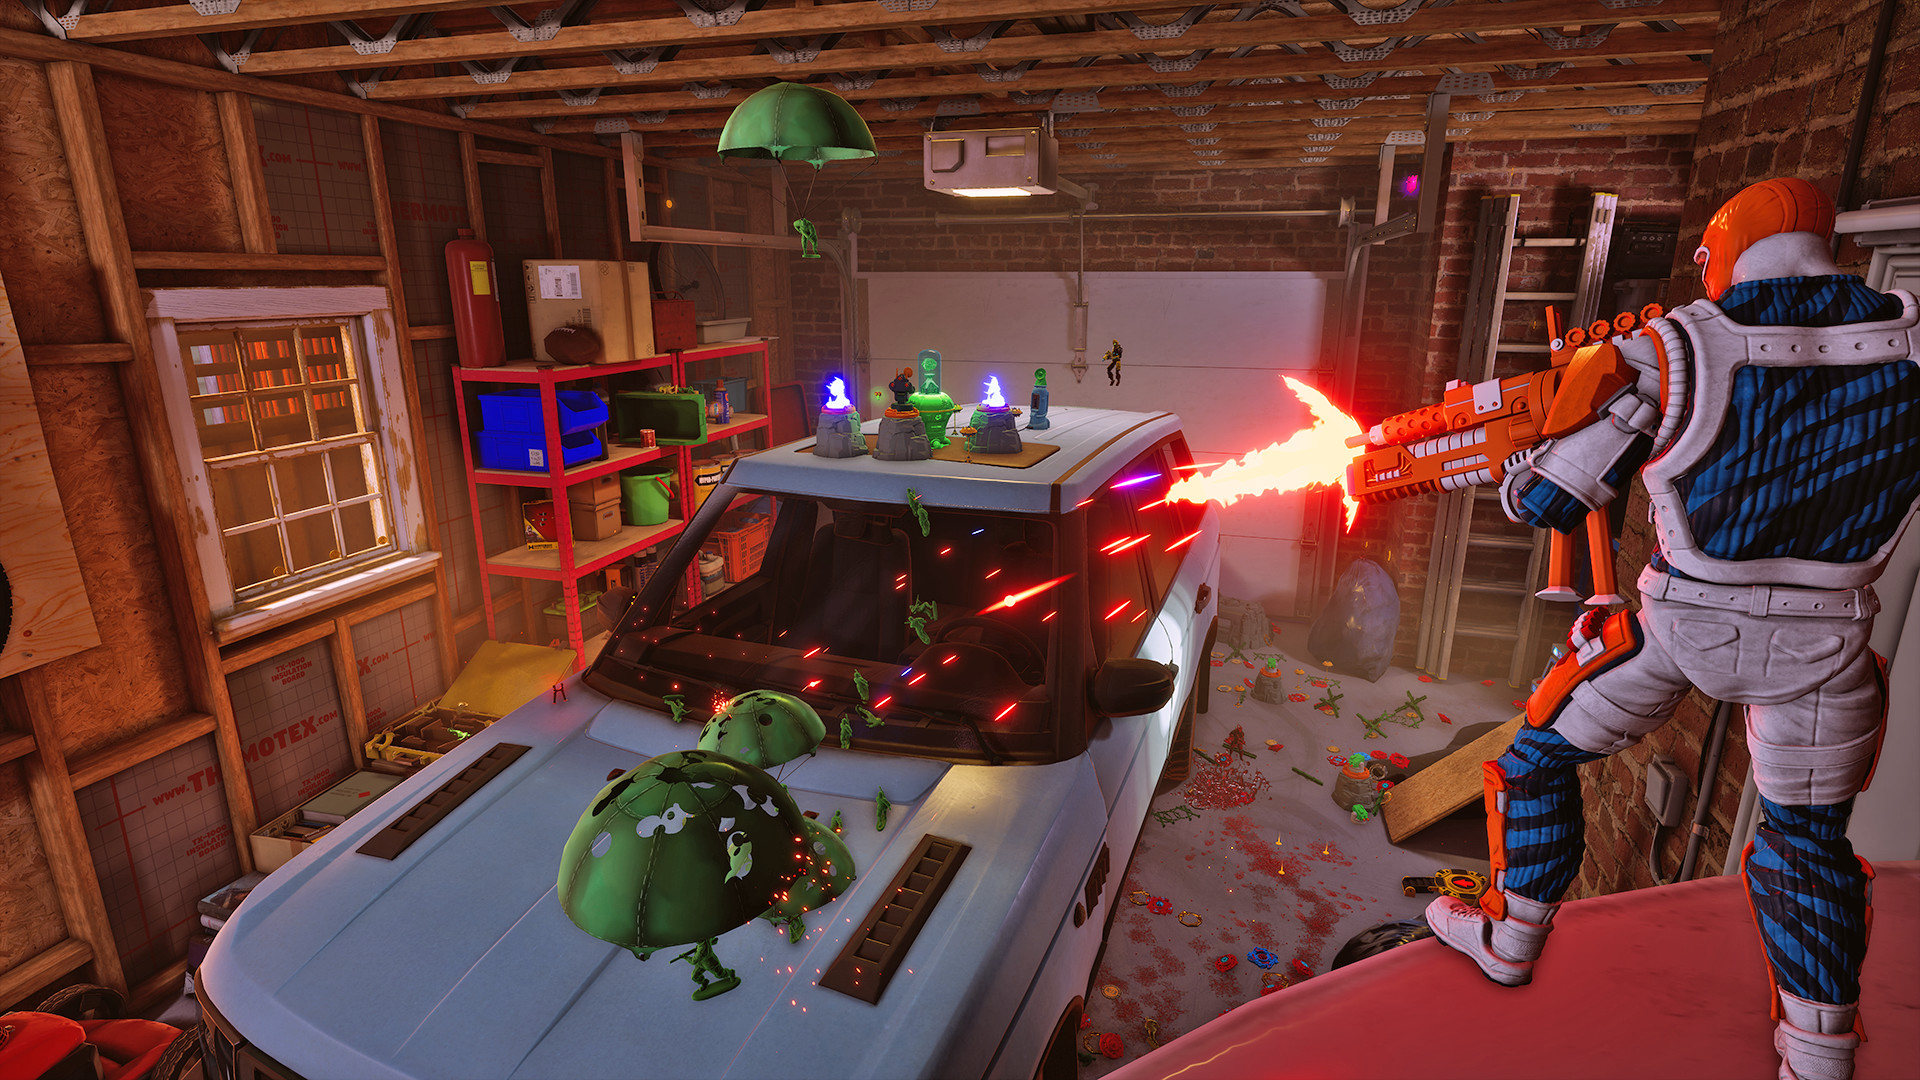 hypercharge-unboxed-pc-screenshot-4